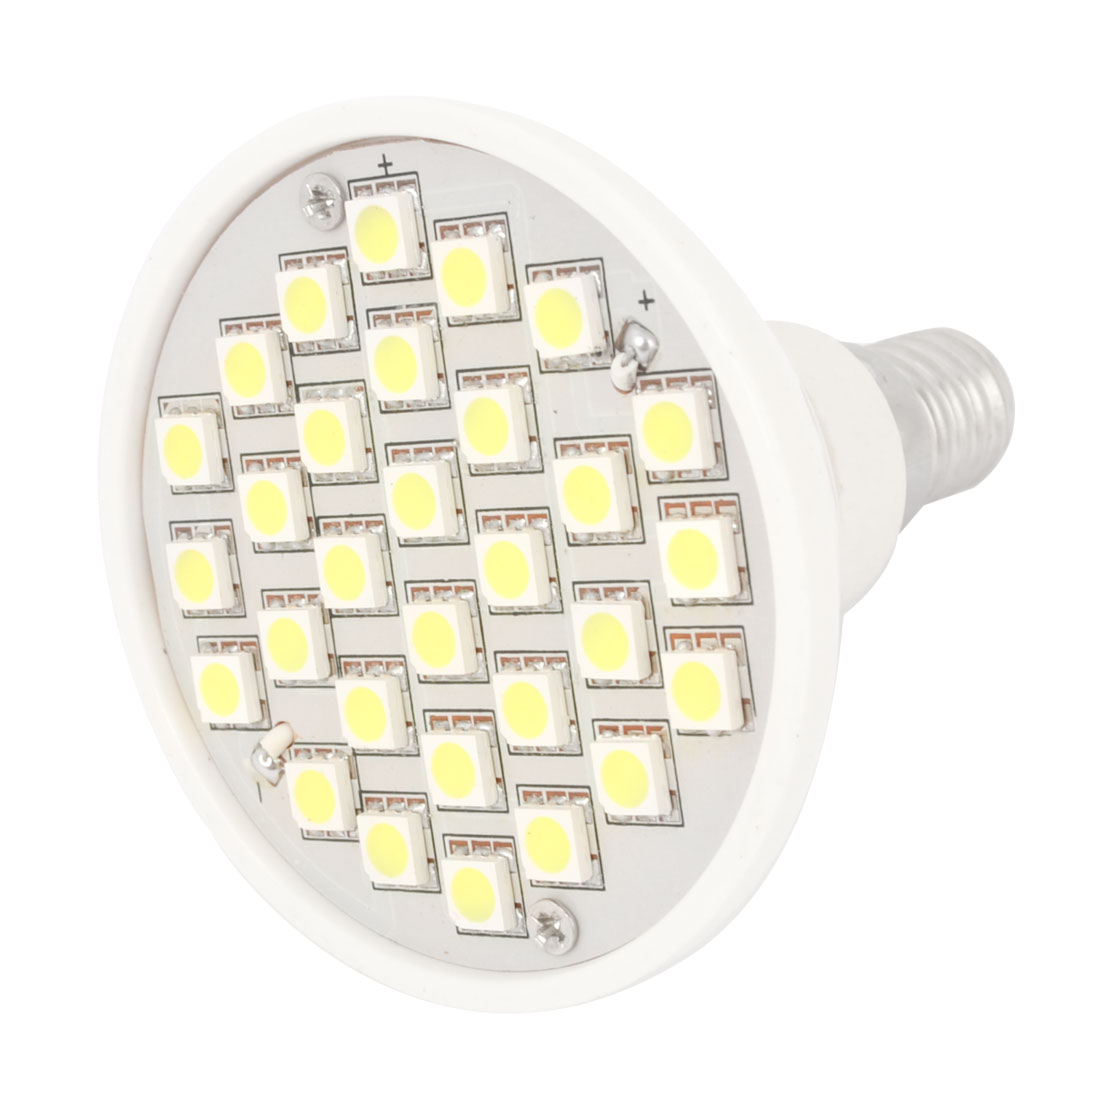 AC 220V E14 Base 30 3528 SMD LED White Spot Light Energy Saving Bulb Lamp 3000K 3W